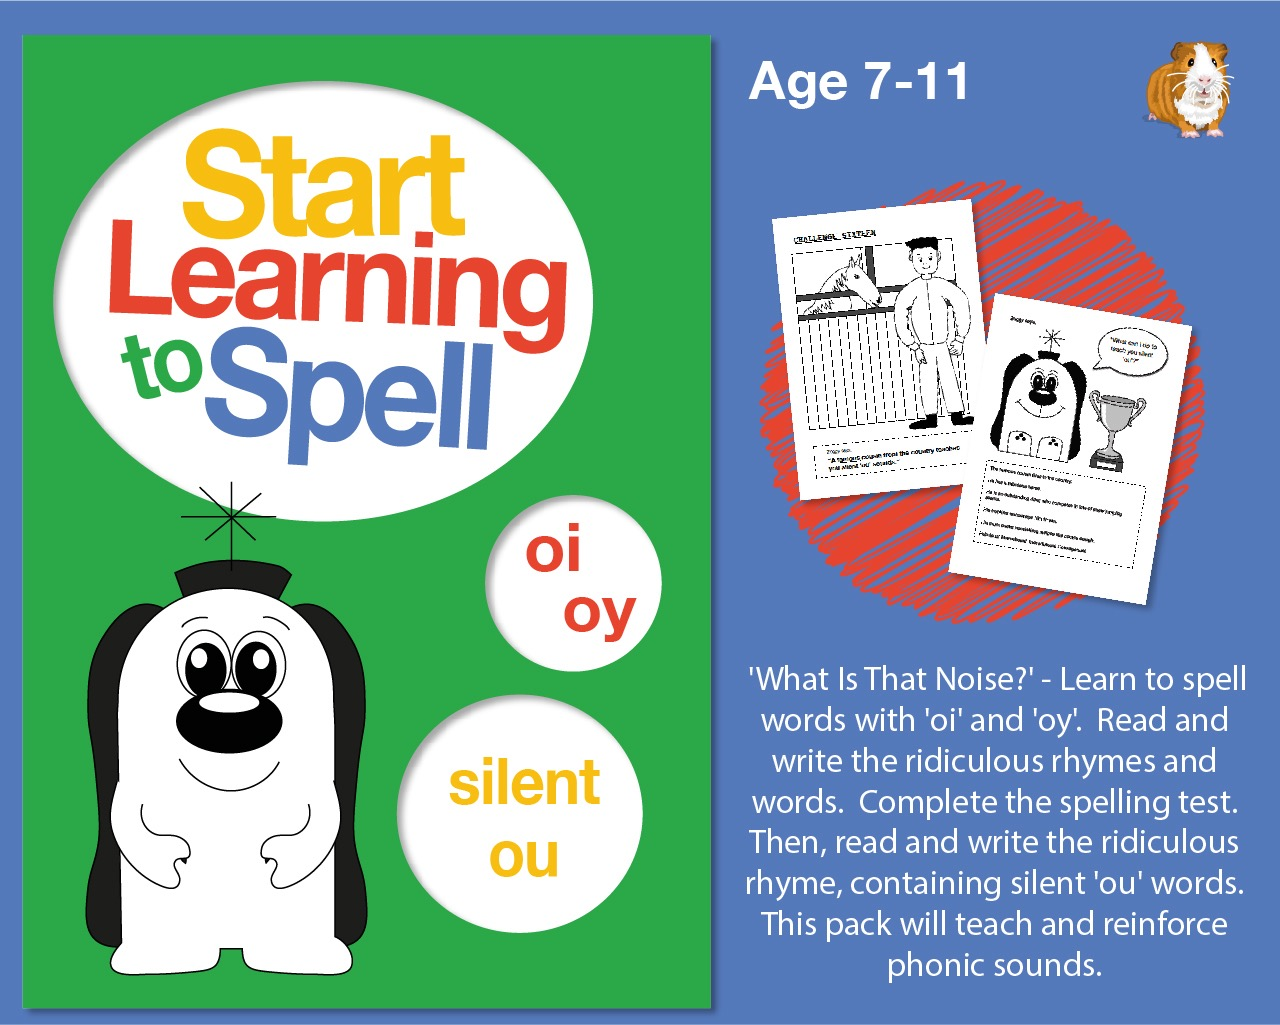 Spell Words With 'oi', 'oy' & Silent 'ou': Learn To Spell With Phonics (7-11 years)